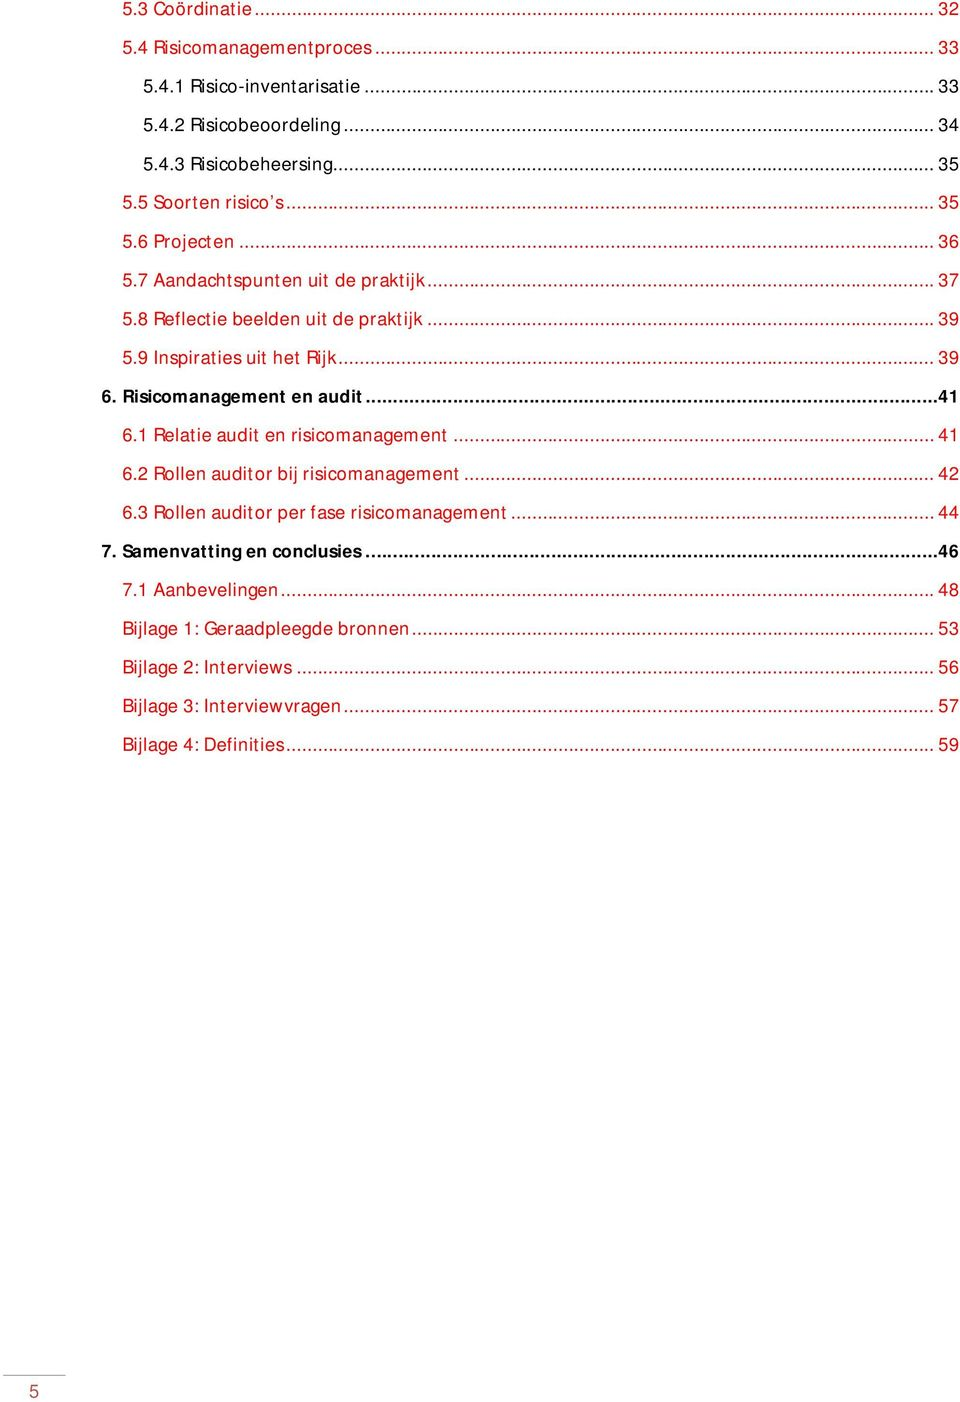 Risicomanagement en audit...41 6.1 Relatie audit en risicomanagement... 41 6.2 Rollen auditor bij risicomanagement... 42 6.3 Rollen auditor per fase risicomanagement.